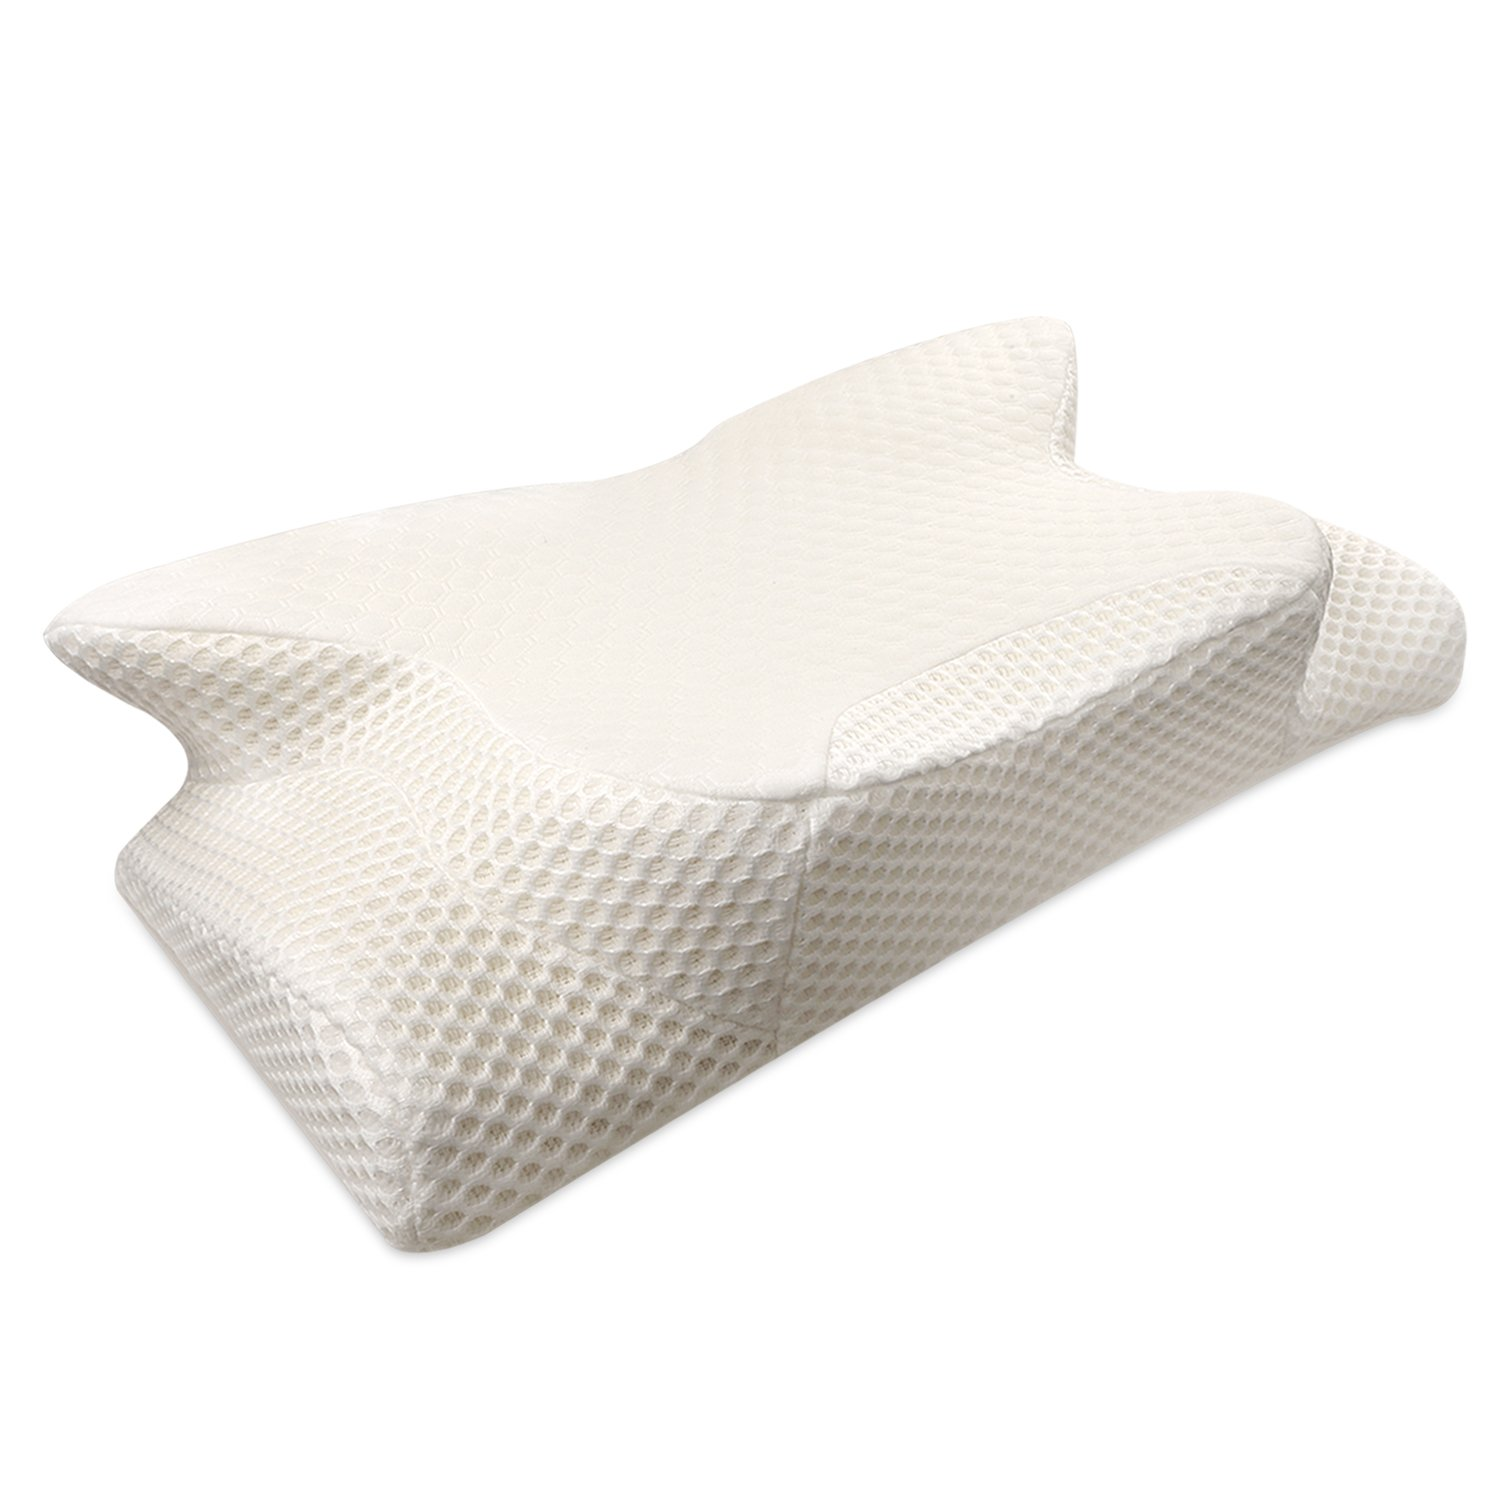 Maxchange Cervical Pillow, Memory Foam Contour Pillow for Neck and Shoulder Pain Relief, Neck Support Pillow for Back/Side Sleepers with Removable and Washable Pillow Case. by Maxchange